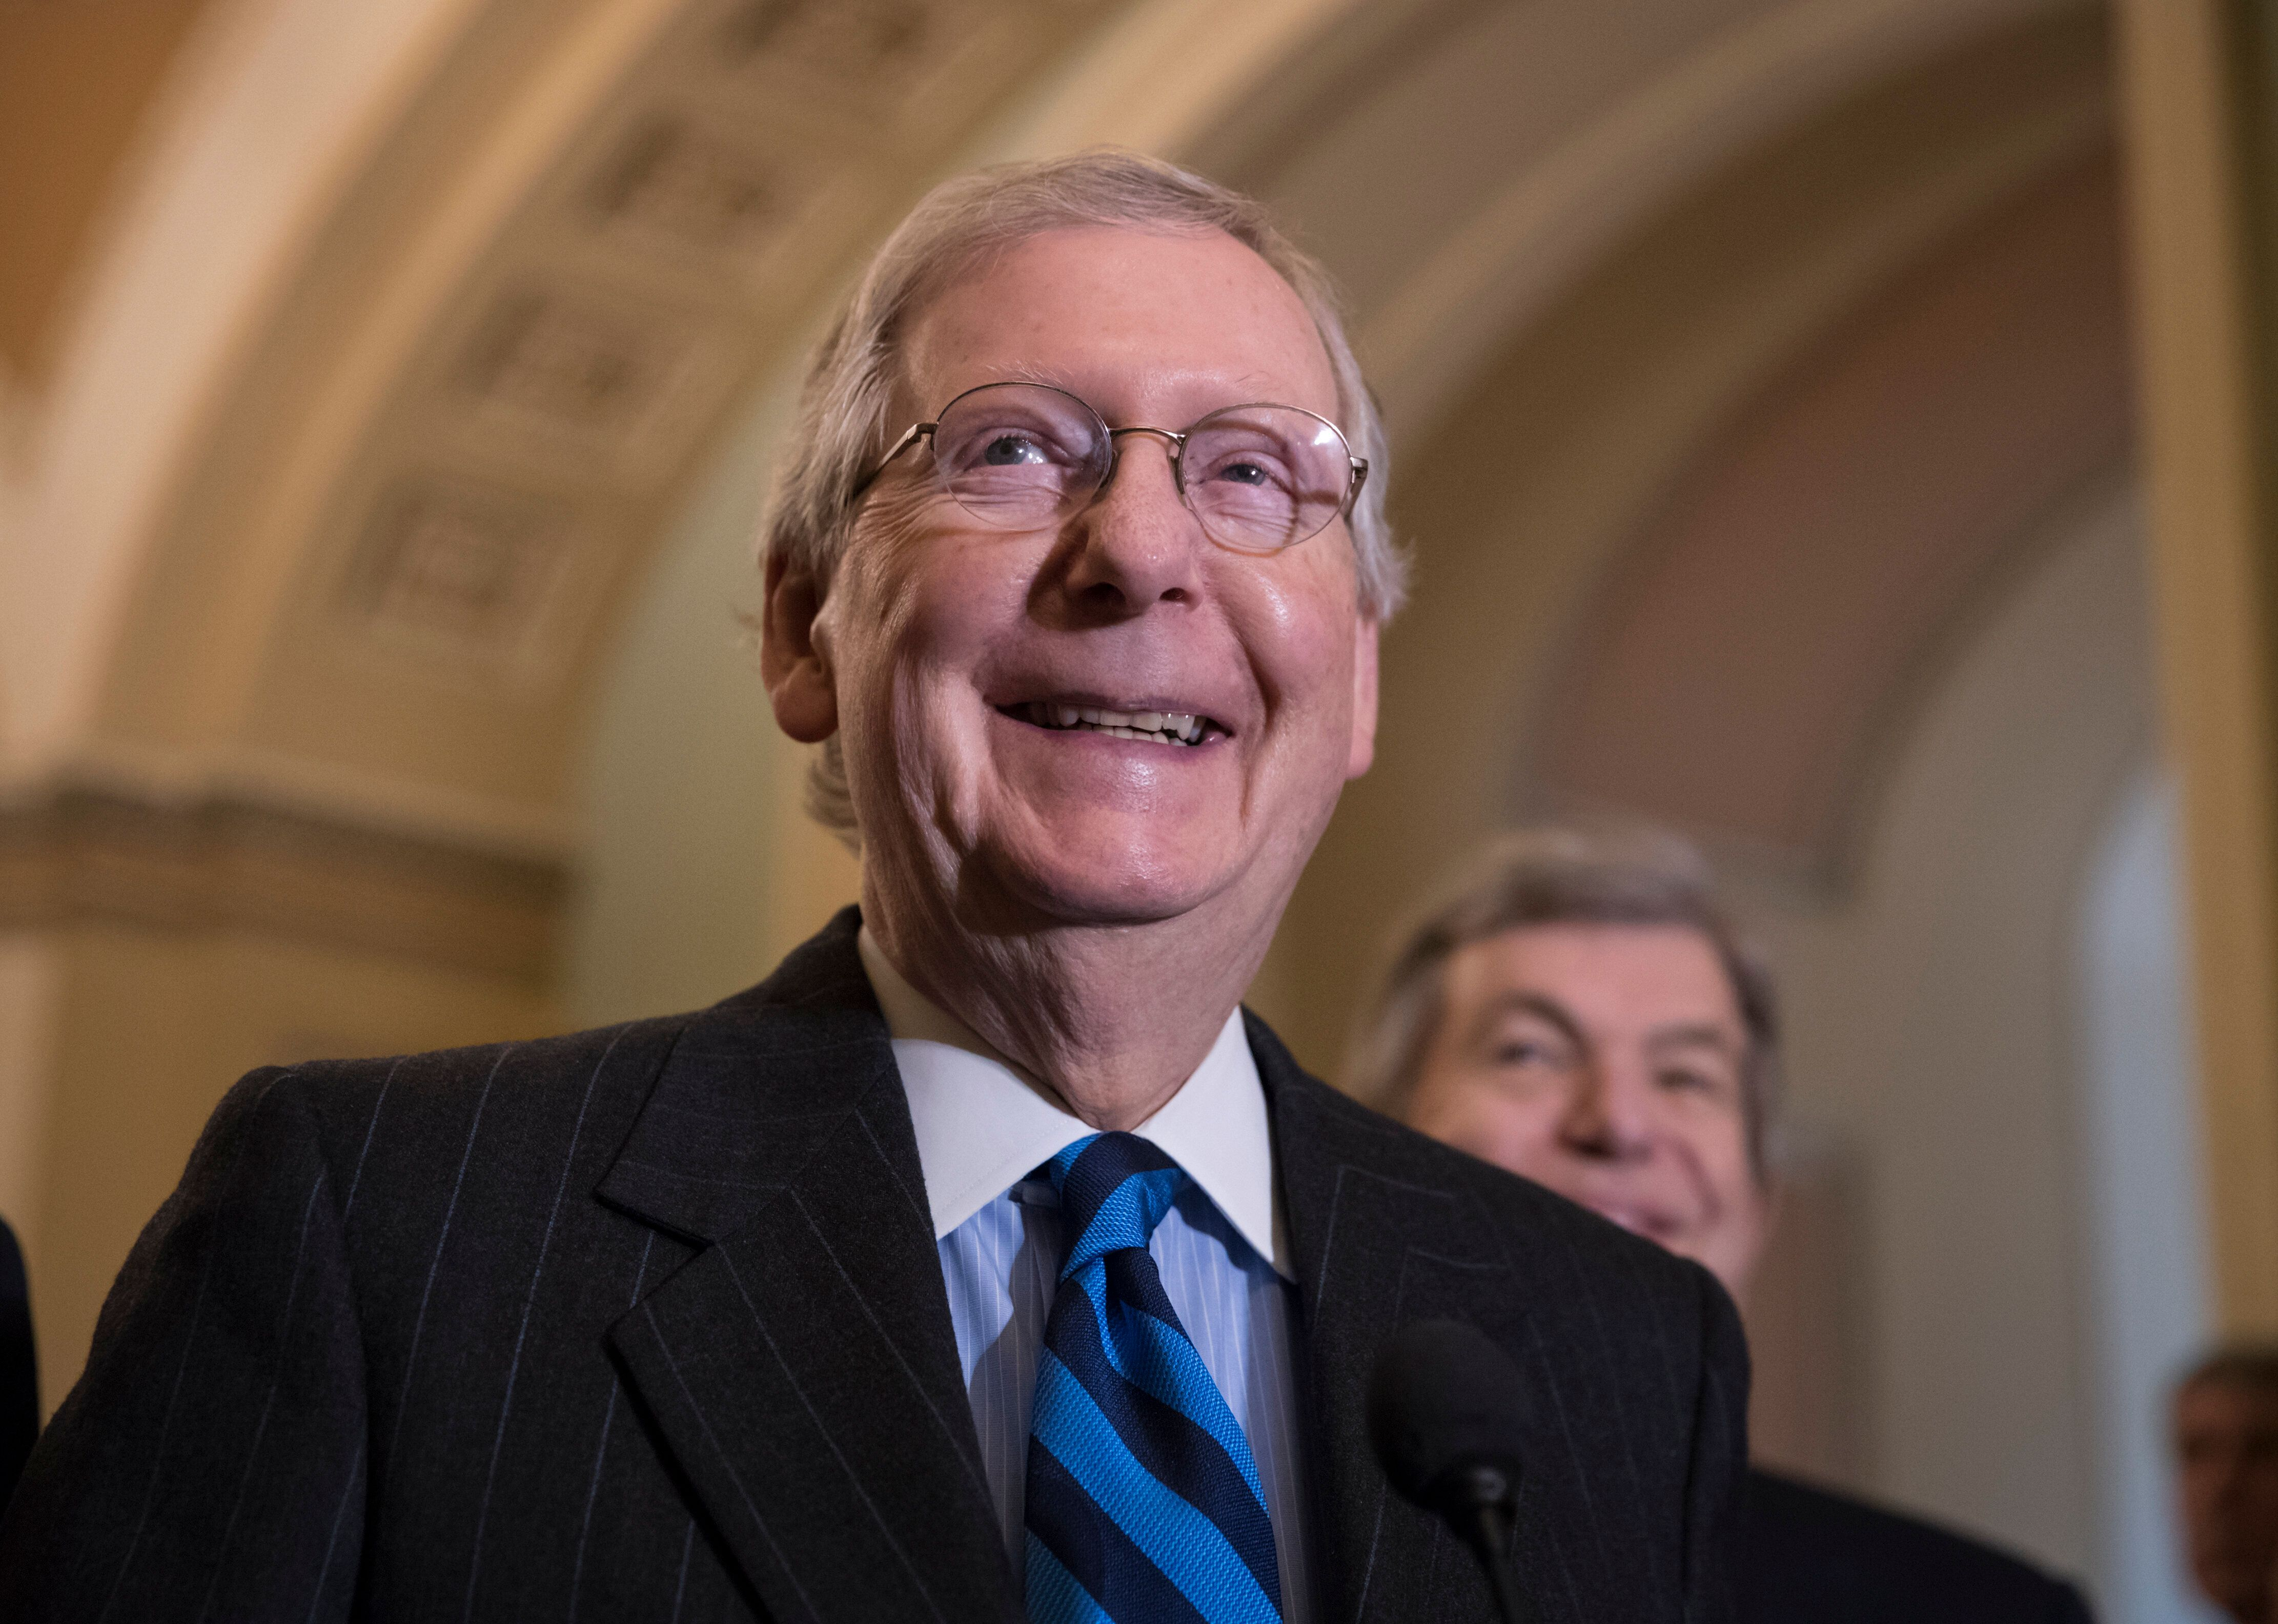 Senate Majority Leader Mitch McConnell, R-Ky., smiles as he meets with reporters as work continues on a plan to keep the government as a funding deadline approaches, at the Capitol in Washington, Tuesday, Feb. 6, 2018. (AP Photo/J. Scott Applewhite)